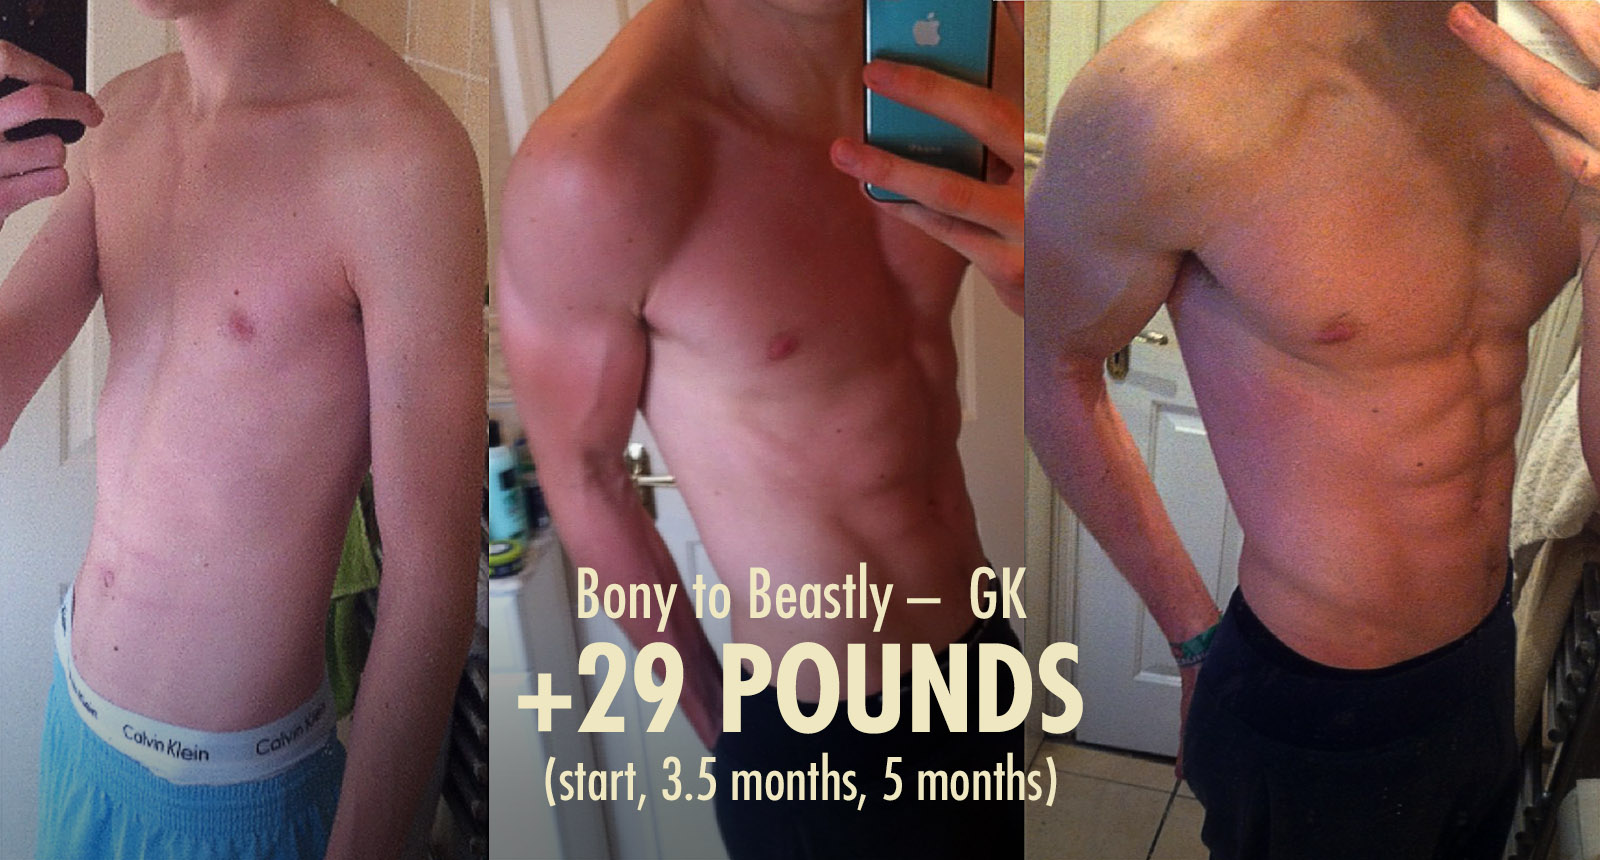 Before and after photo of a skinny guy bulking up and becoming muscular.